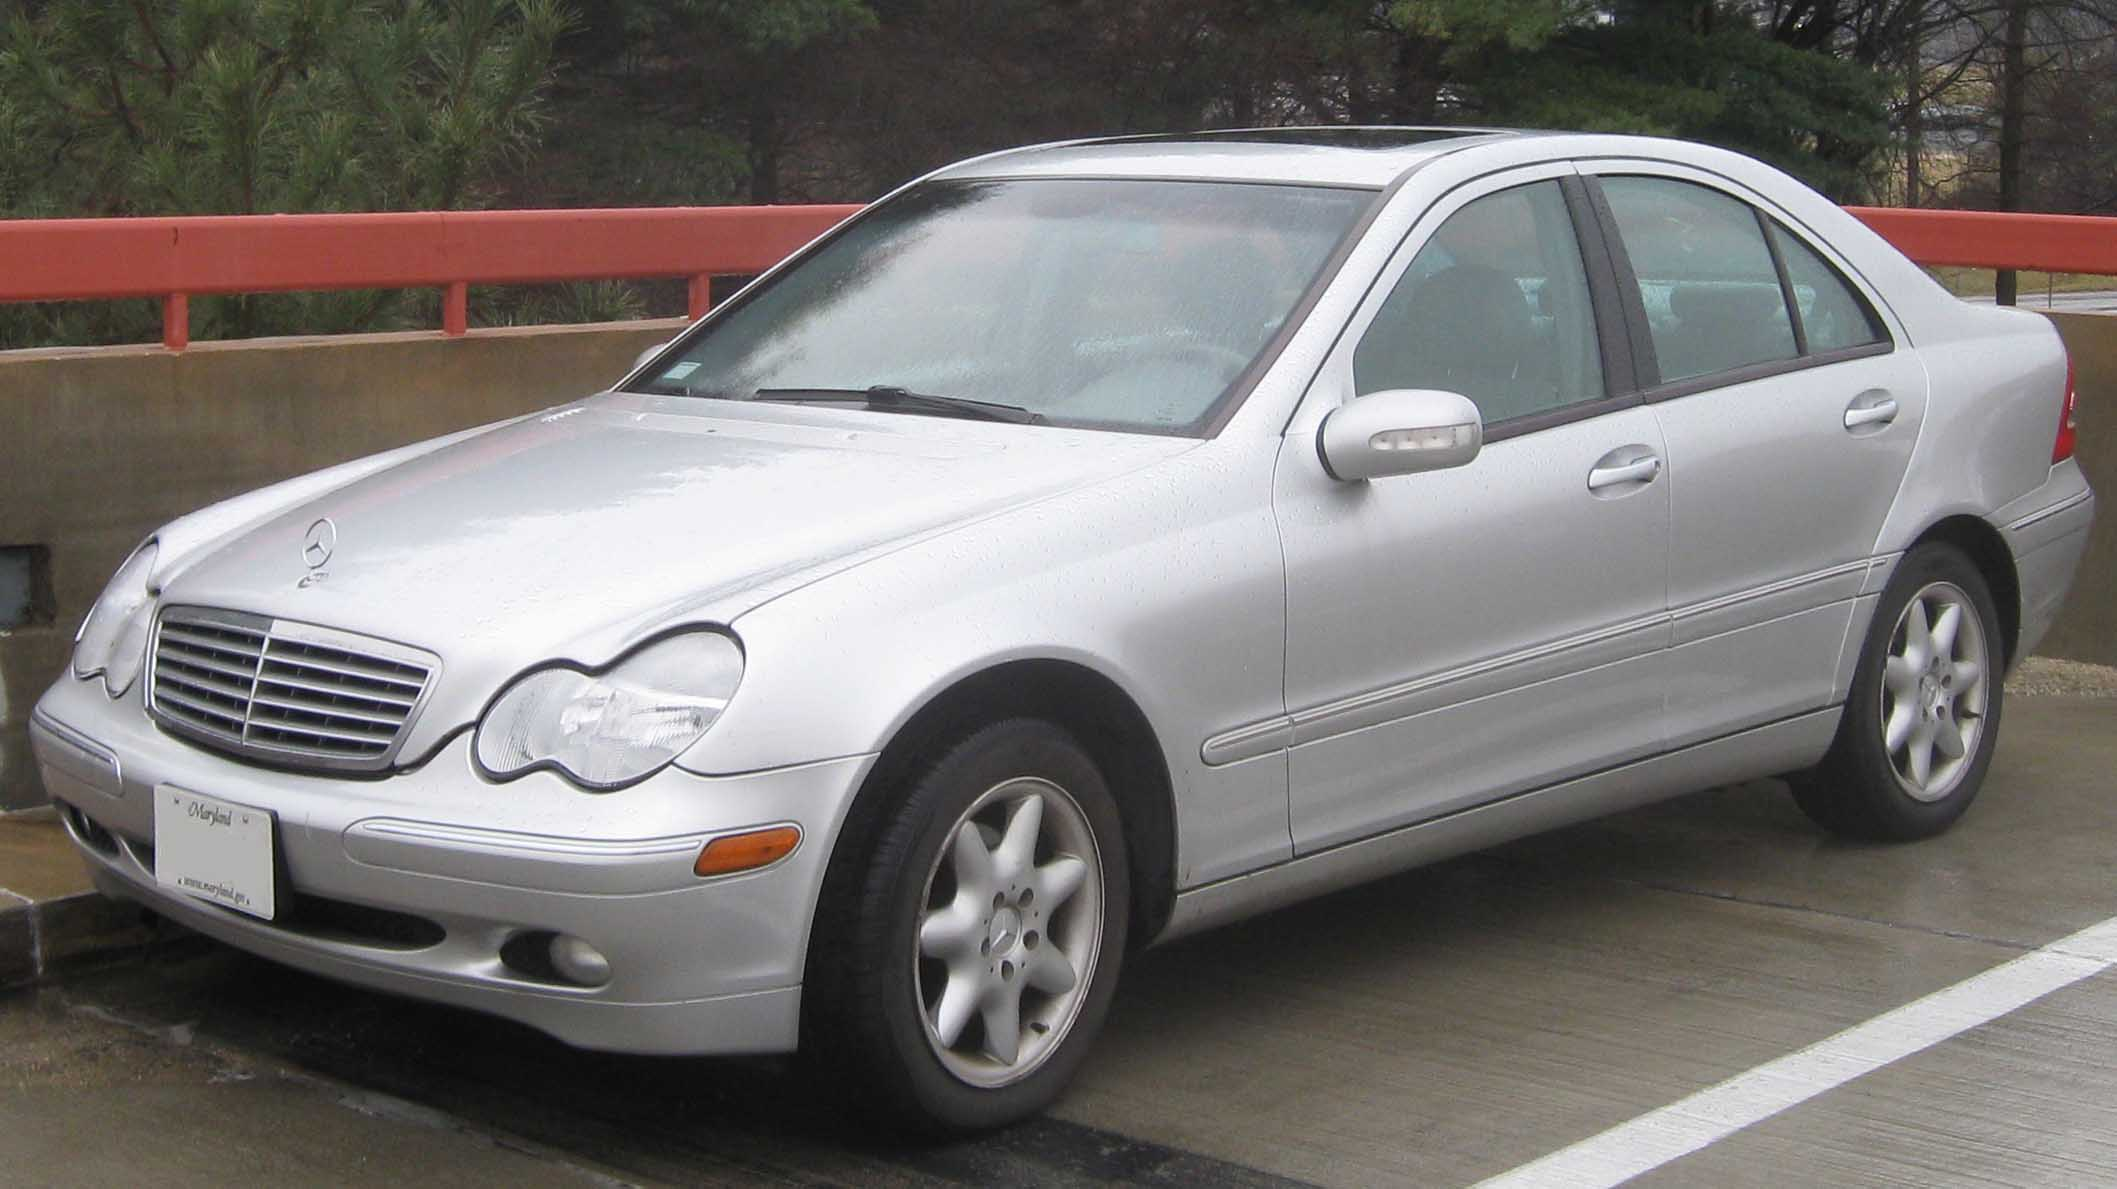 Mercedes benz c 240 technical details history photos on for Mercedes benz of atlanta parts